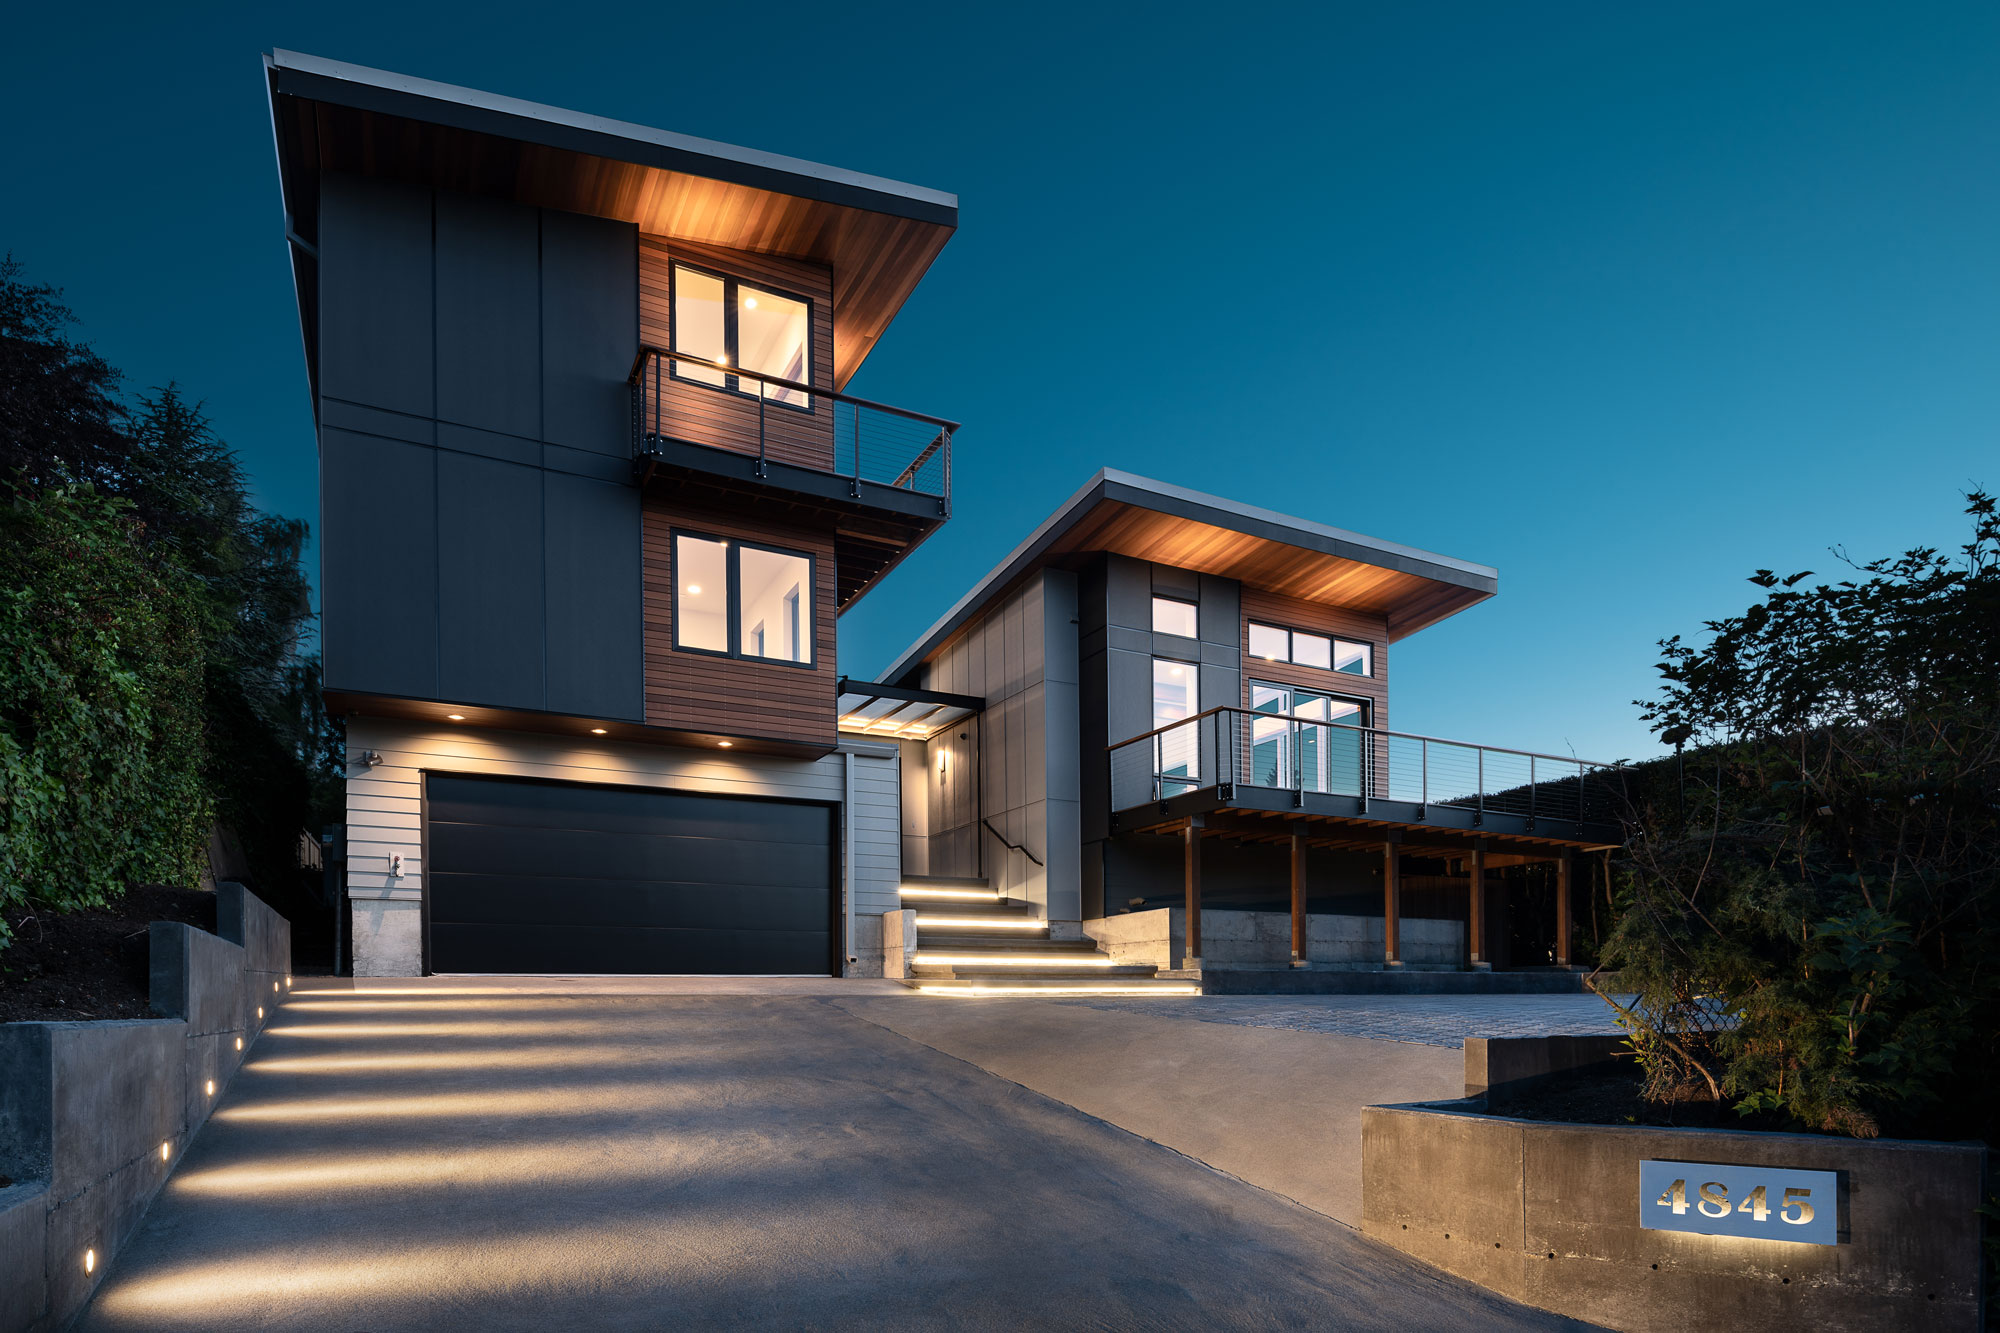 three story dark brown colored wood and steel metal modern house with glass windows garage and driveway